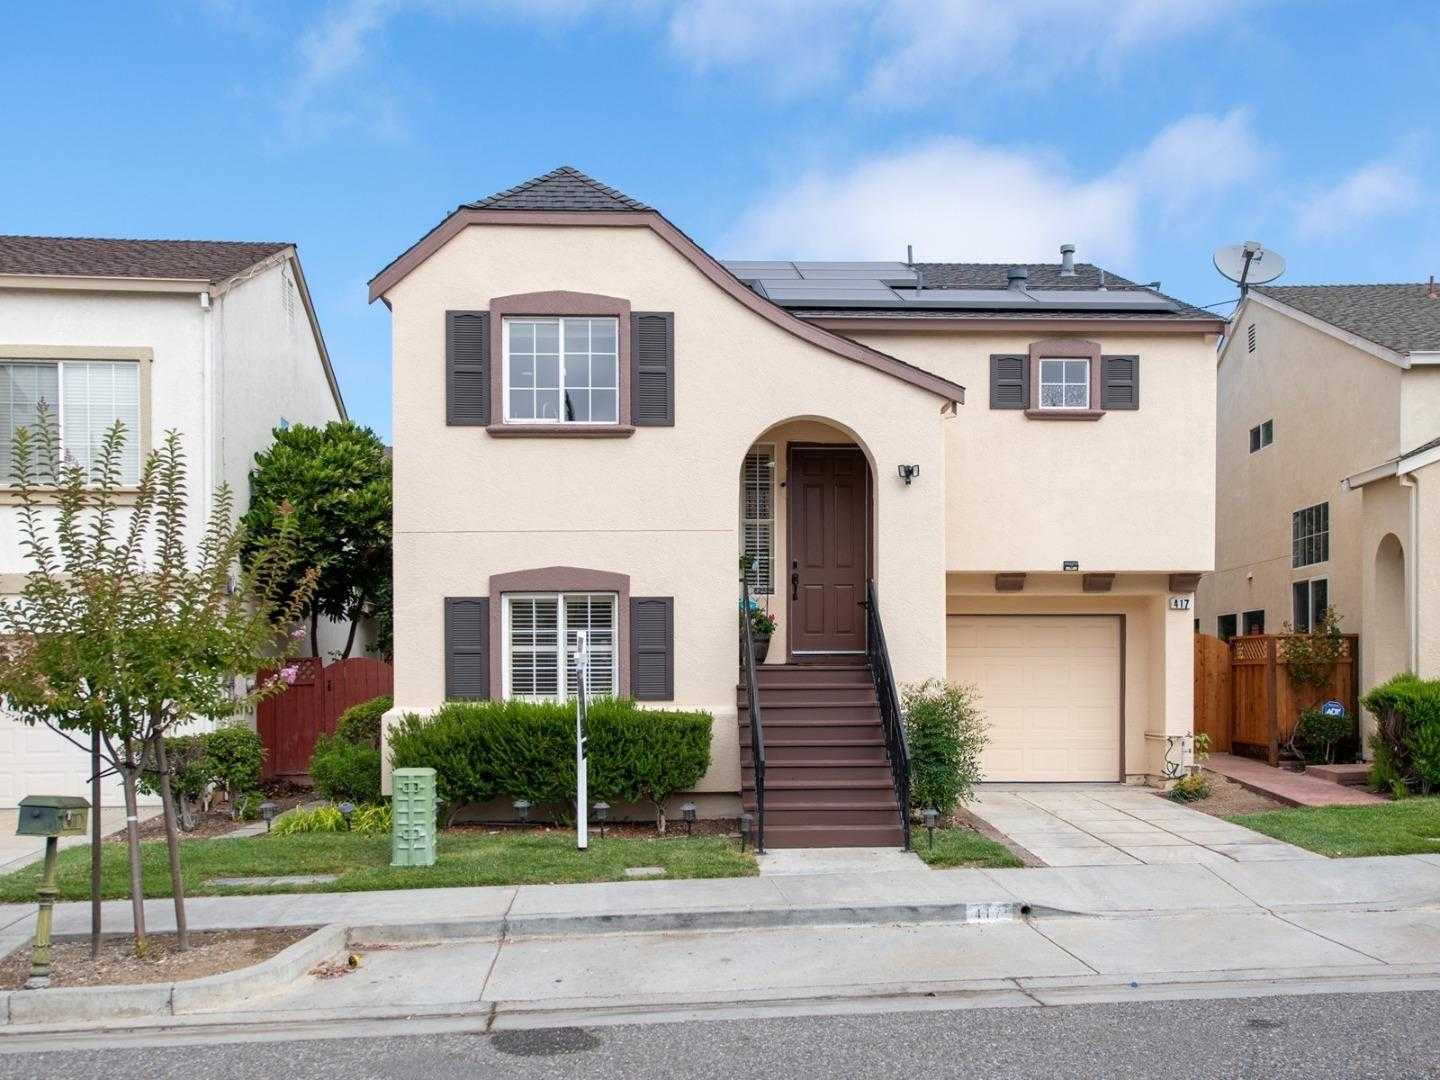 $970,000 - 3Br/3Ba -  for Sale in San Jose